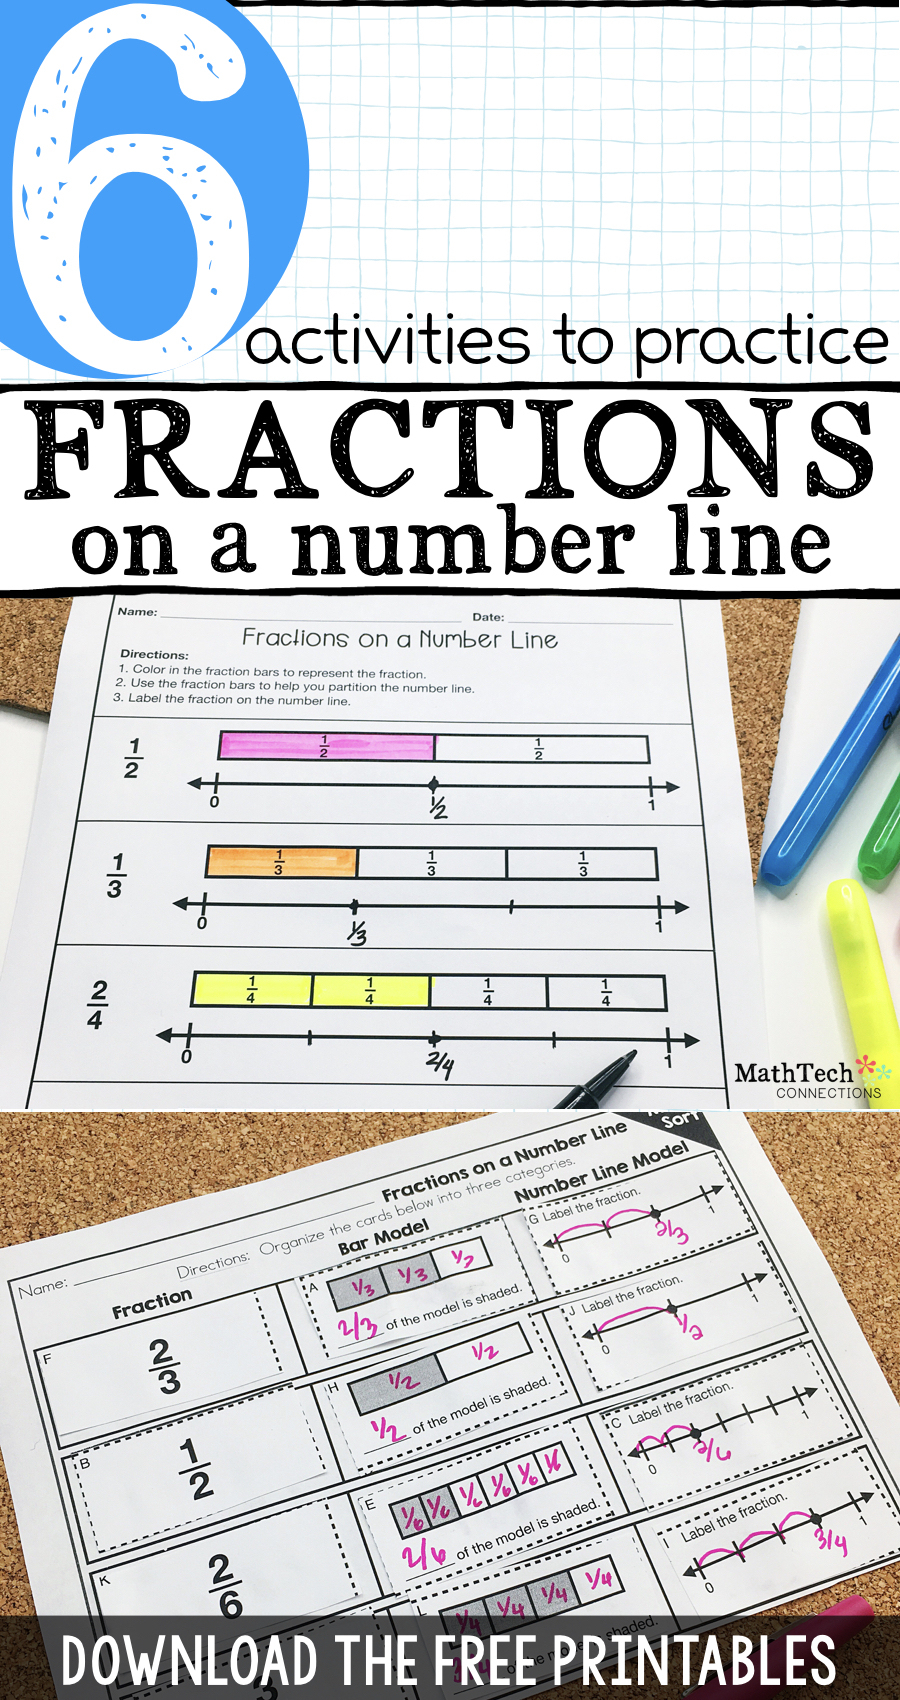 6 Activities To Practice Fractions On A Number Line - Free Printable Math Centers